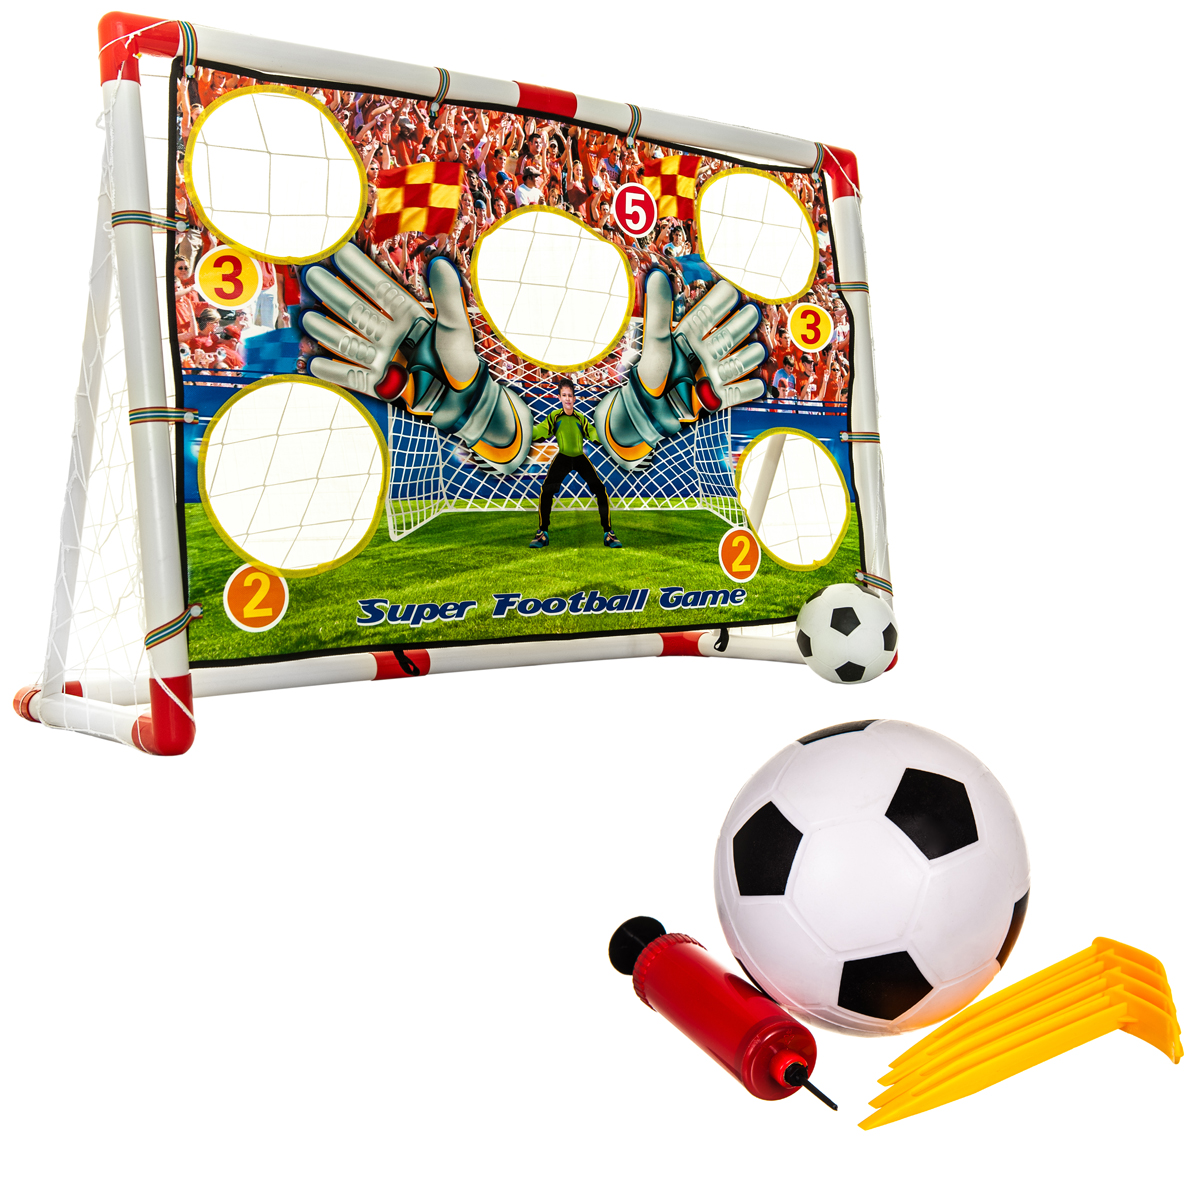 KIDS TARGET FOOTBALL SOCCER GOAL NET SET INDOOR OUTDOOR WITH BALL FAMILY GAME